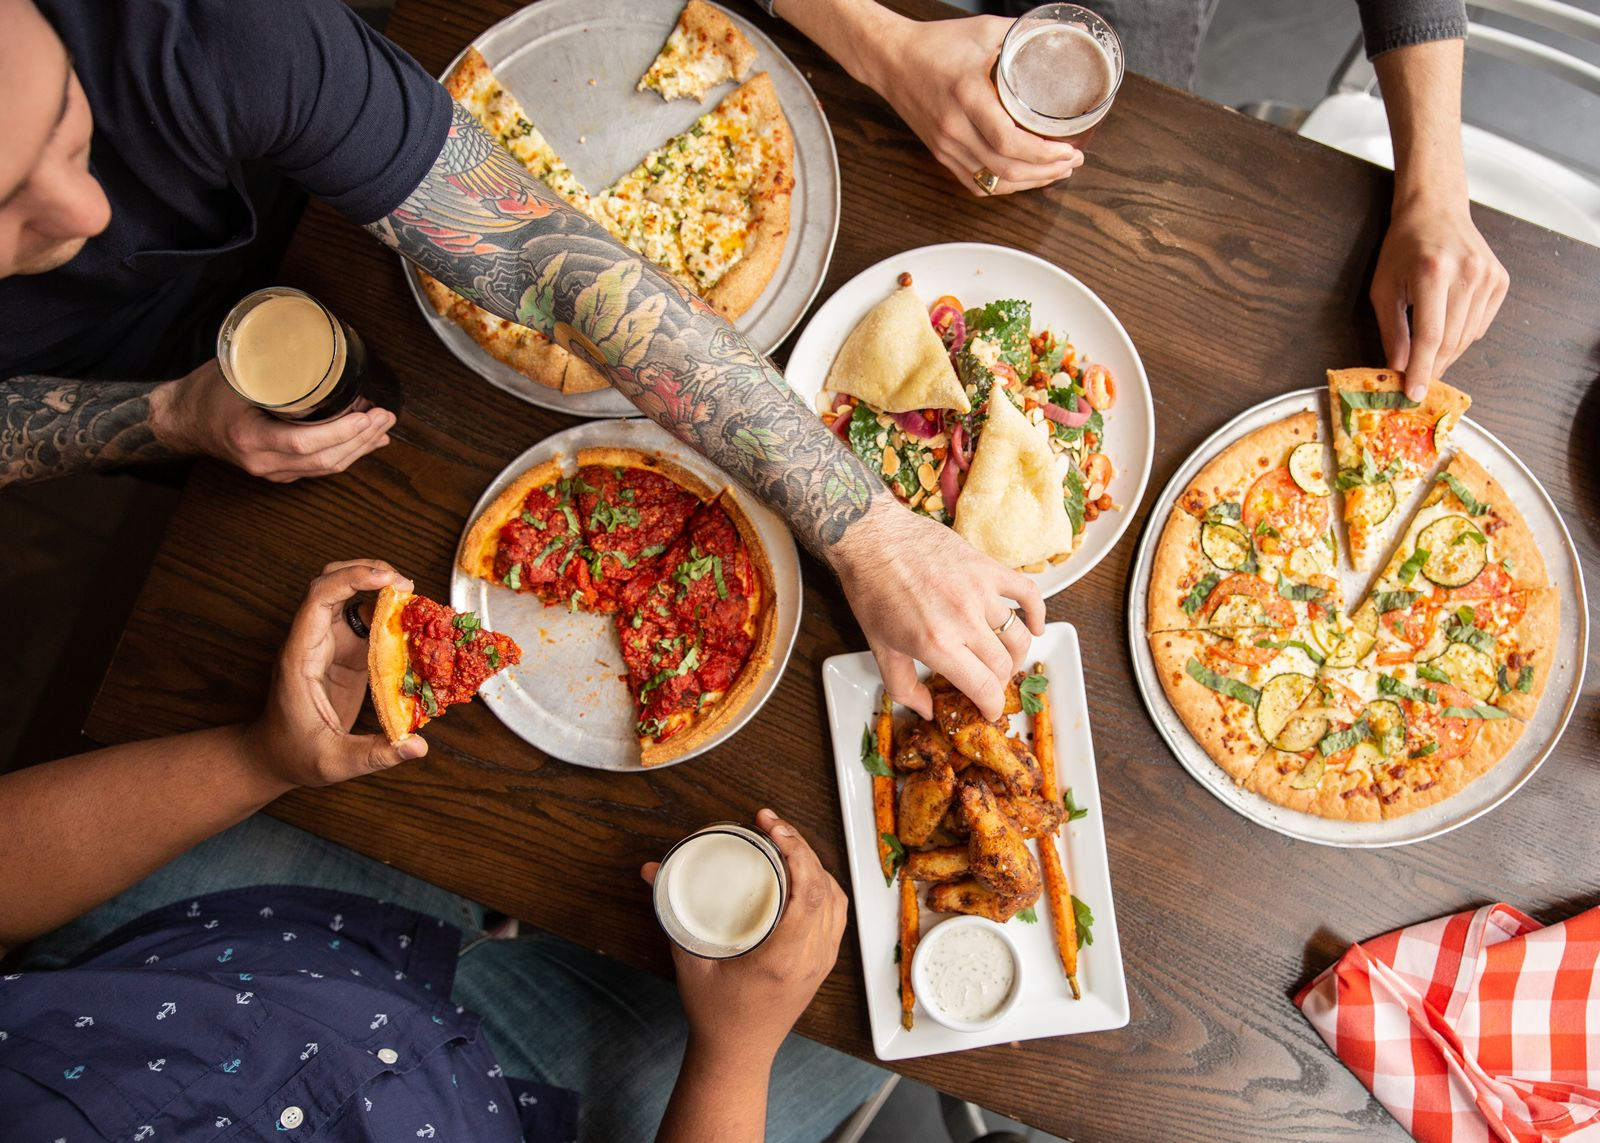 Pi Pizzeria Partners with Fransmart to Bring Their Crave-able, Crunchy Cornmeal Pizzas Nationwide